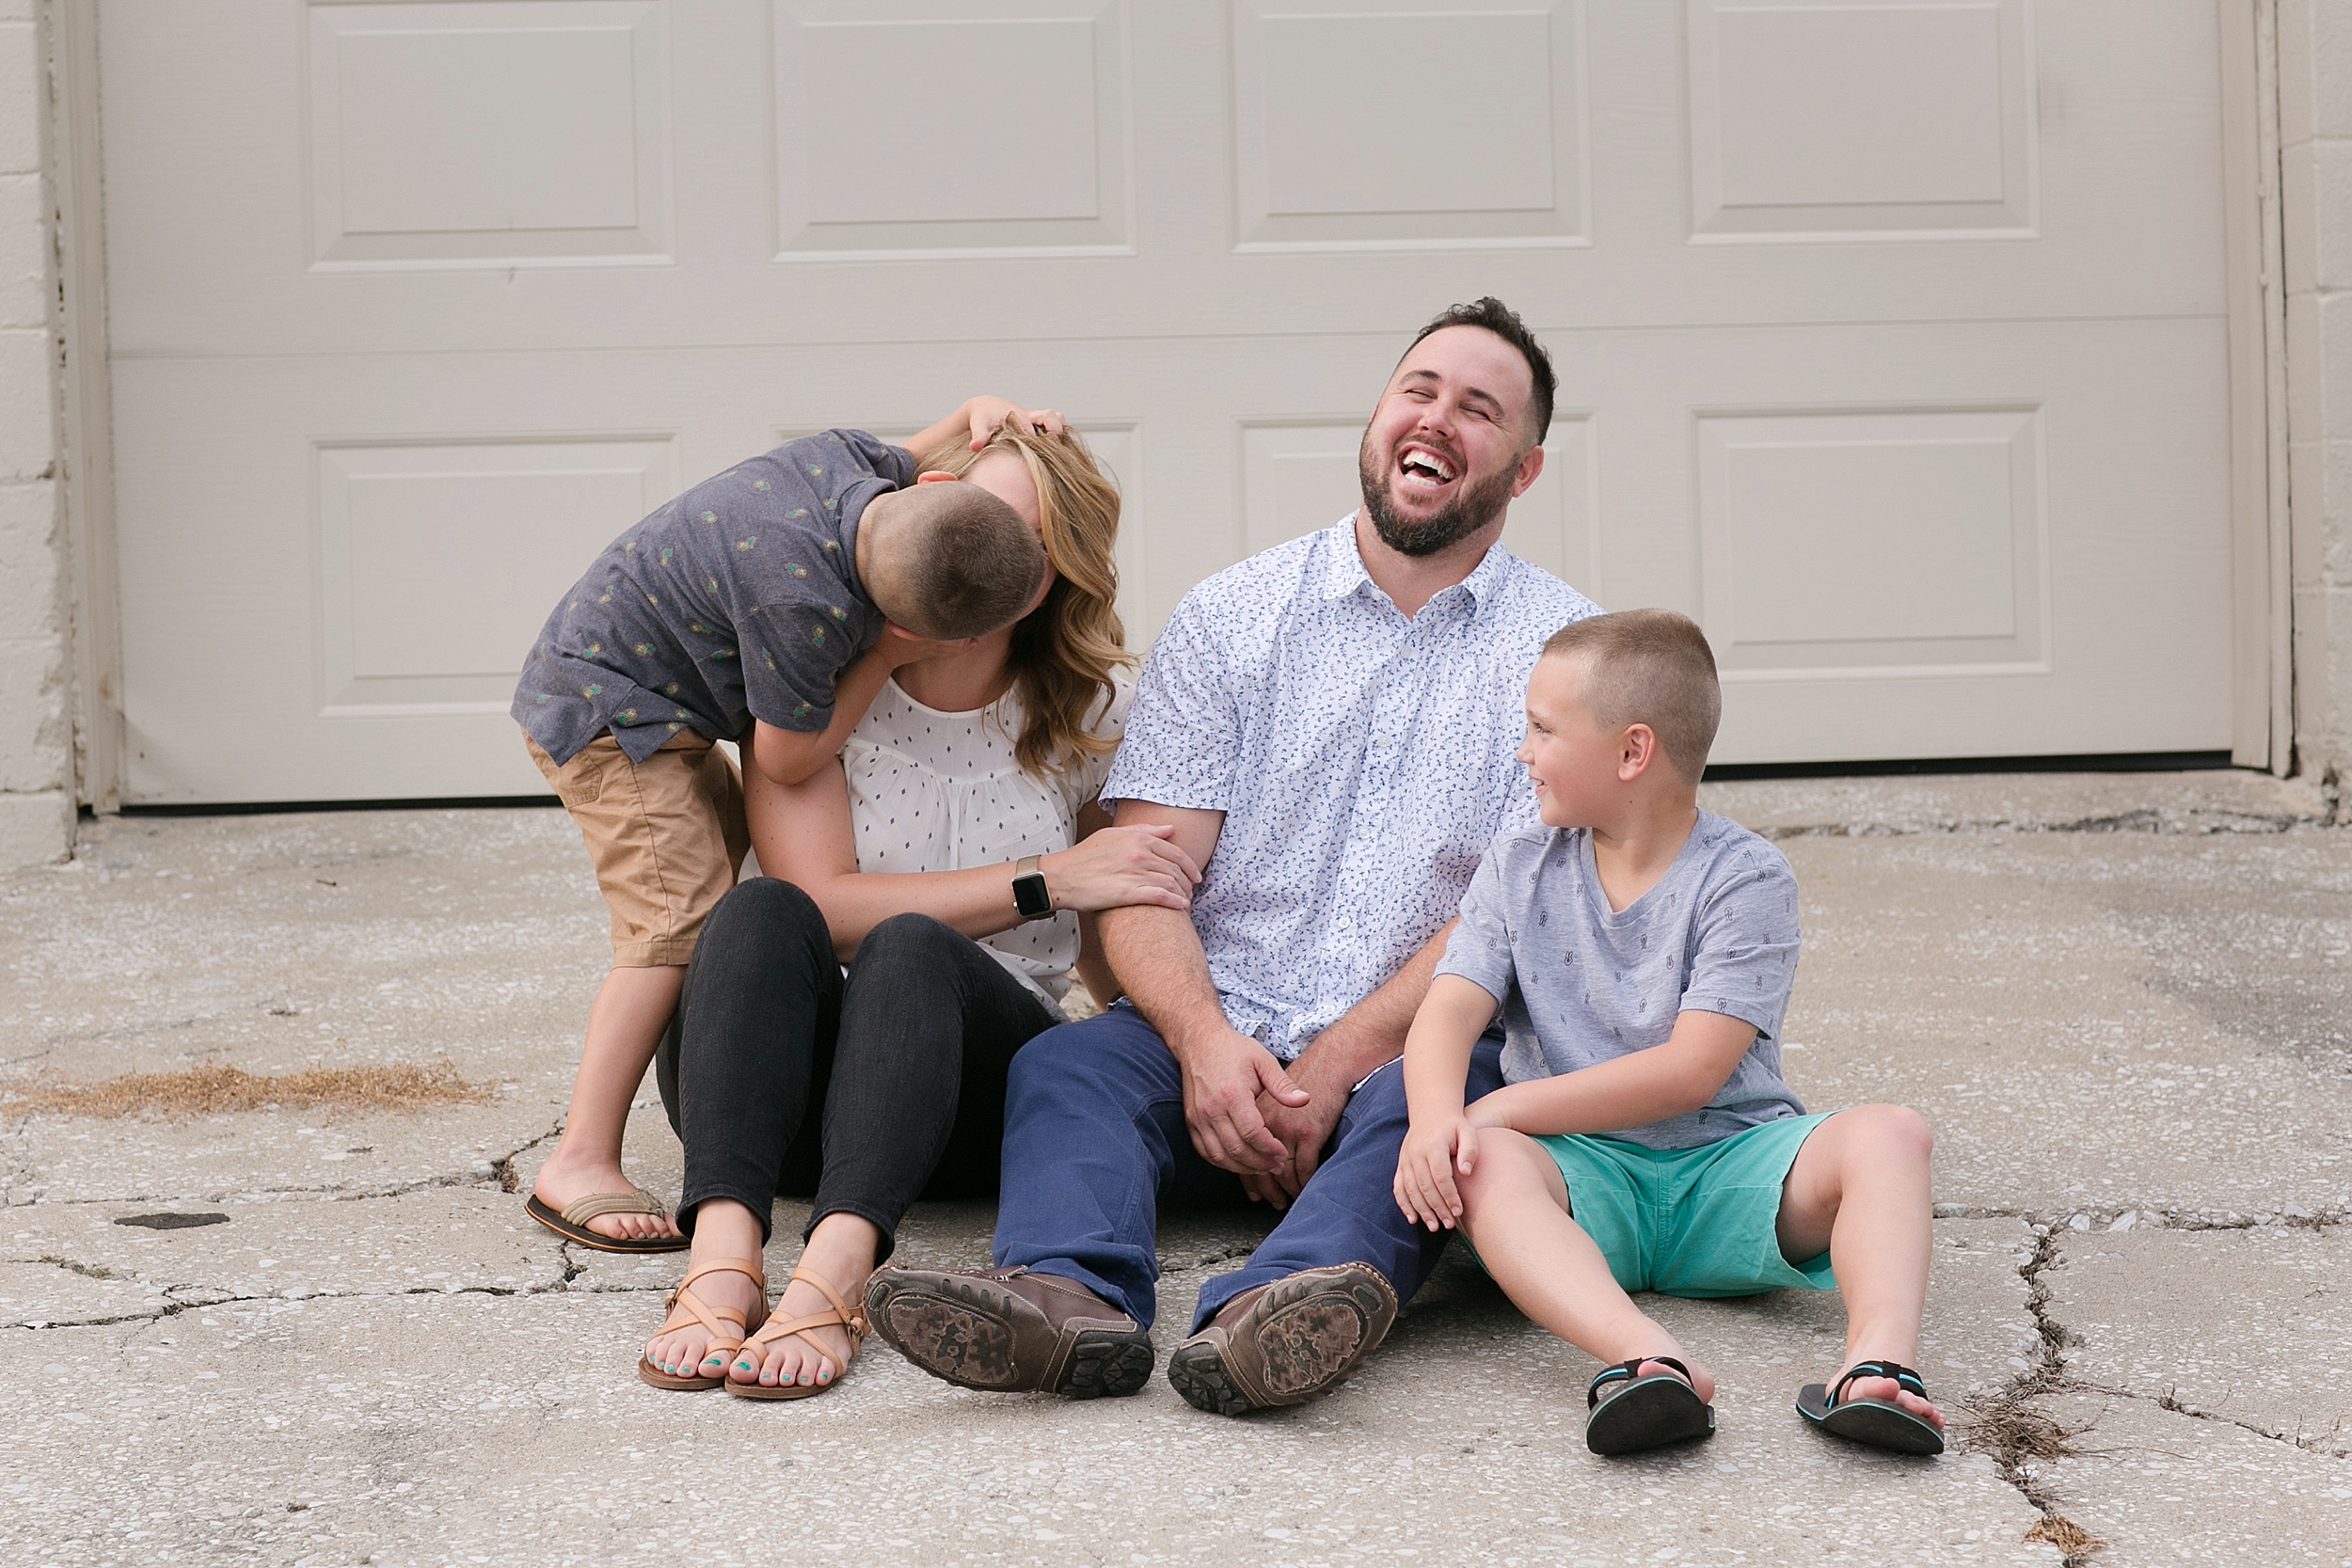 06-funny-family-photo-louisville-ky.jpg